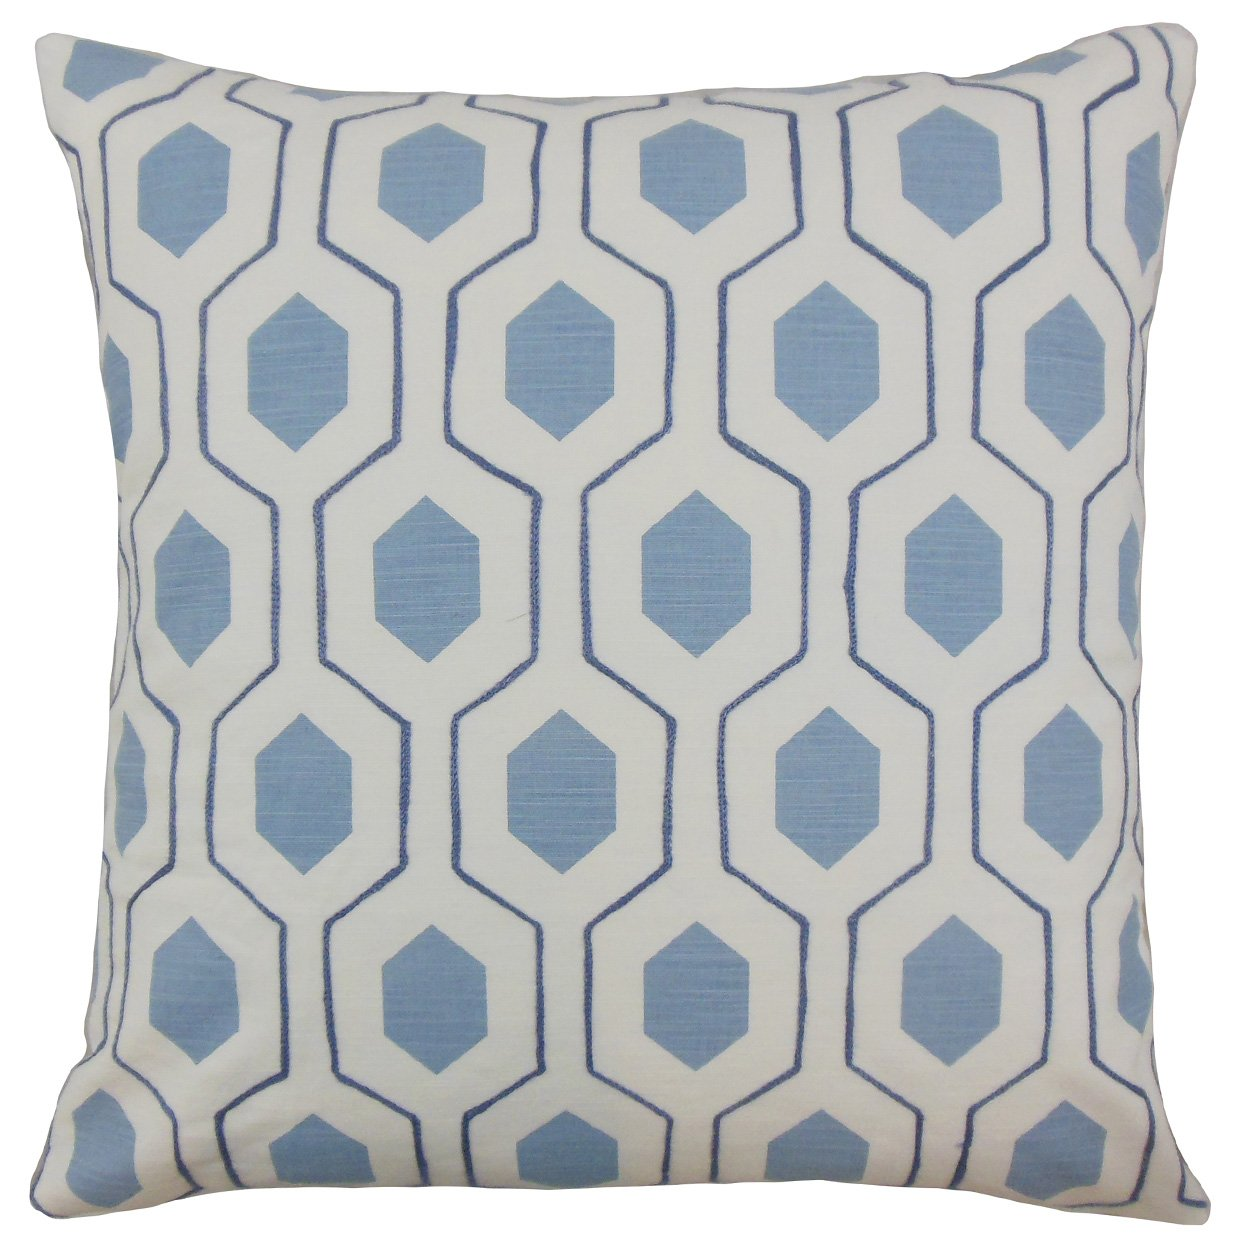 Kess InHouse Catherine Holcombe I Love The Sea 2 Blue Teal Throw Pillow 18 by 18